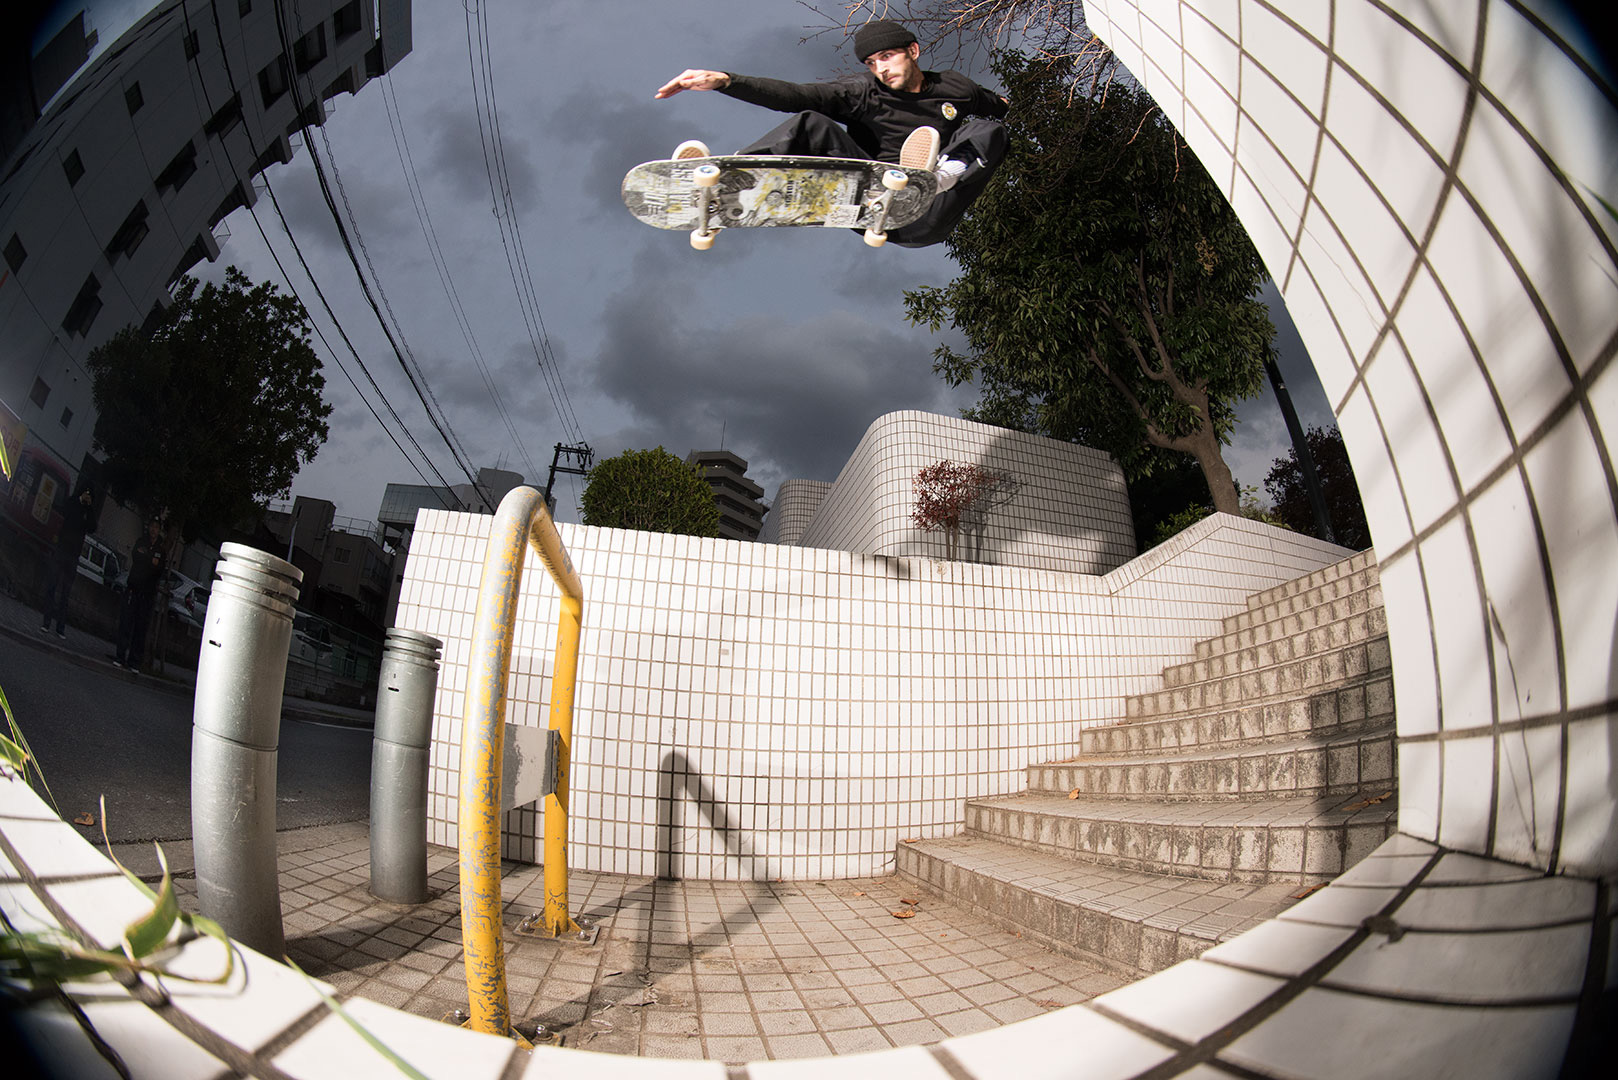 Cody covered some ground with this ollie in the city.